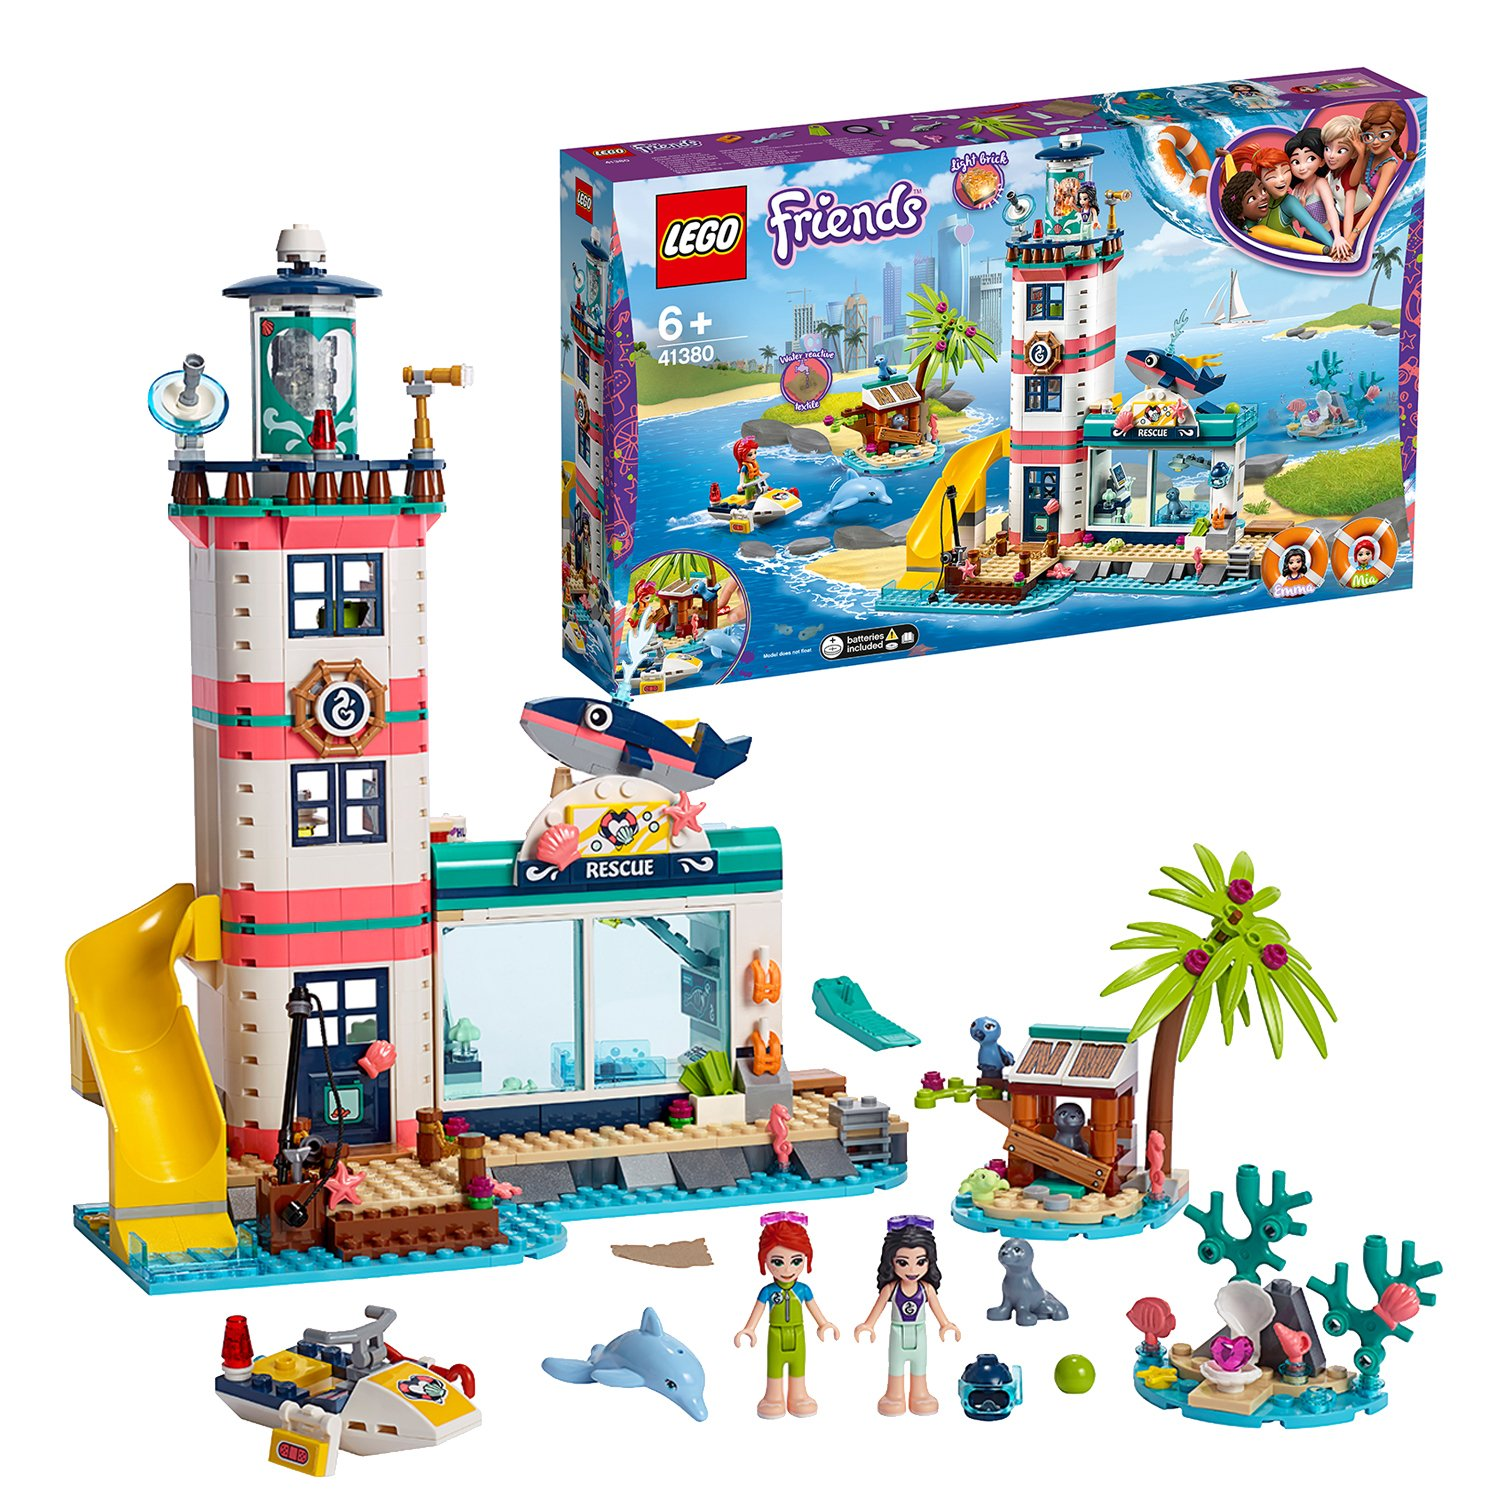 LEGO Friends Lighthouse Rescue Center Playset - 41380